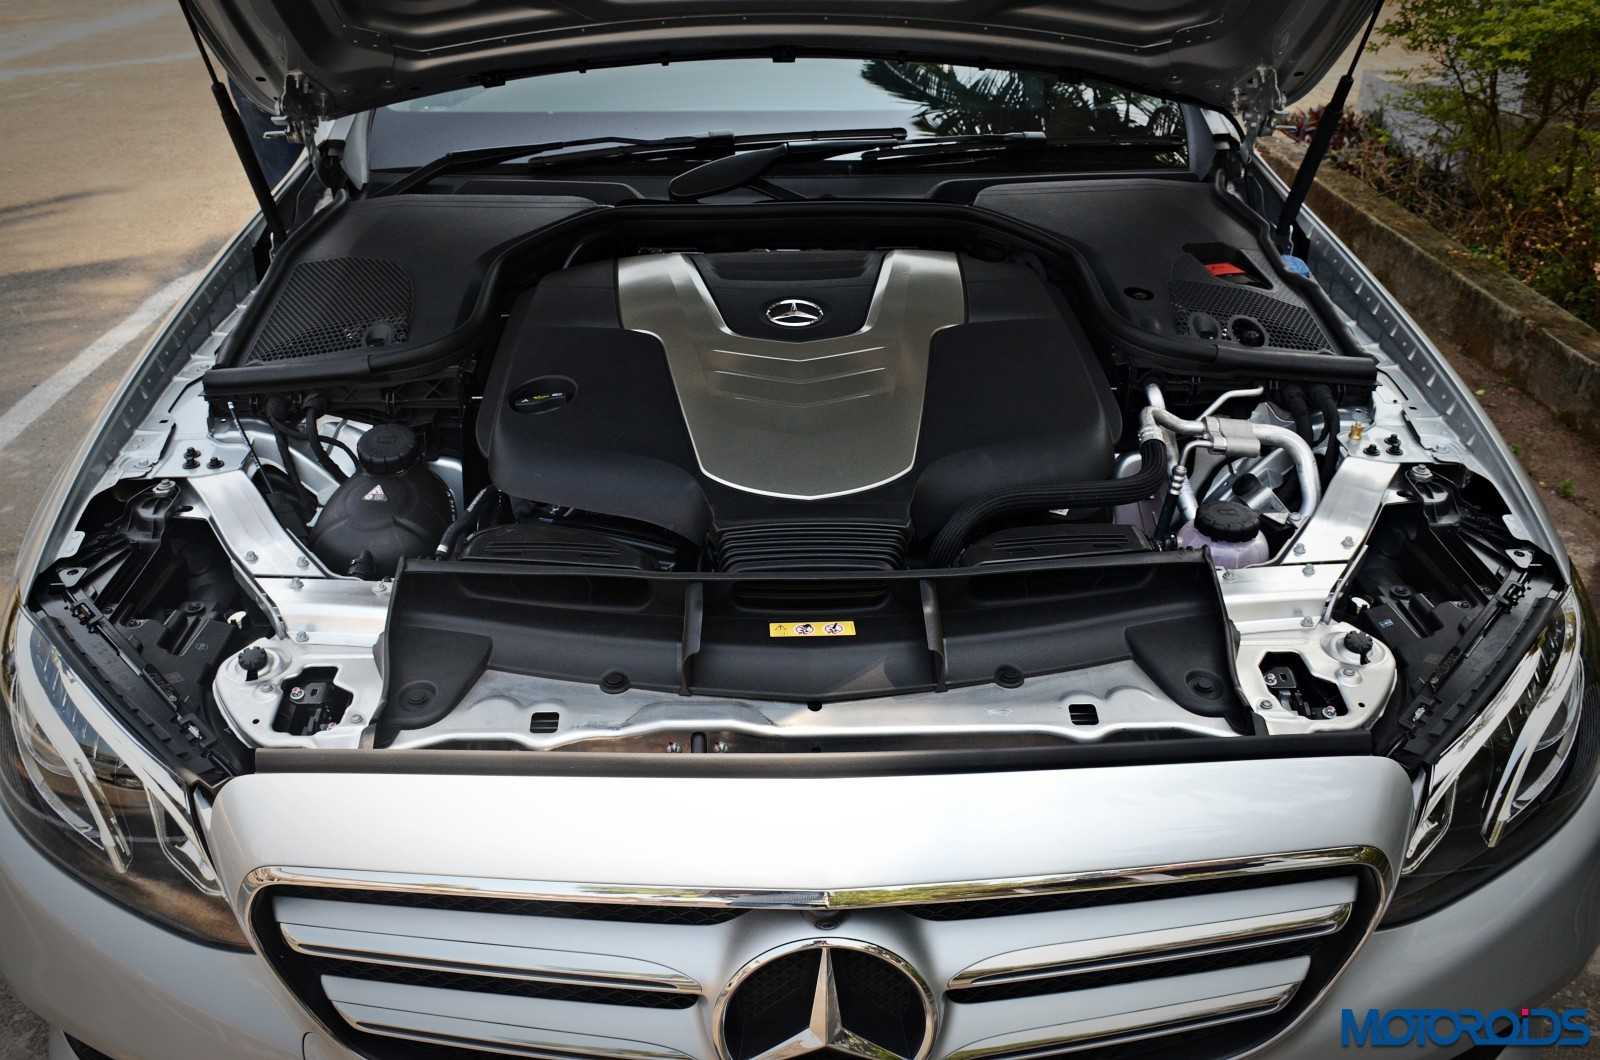 New-Mercedes-Benz-E-350-CDI-LWB-Review-49